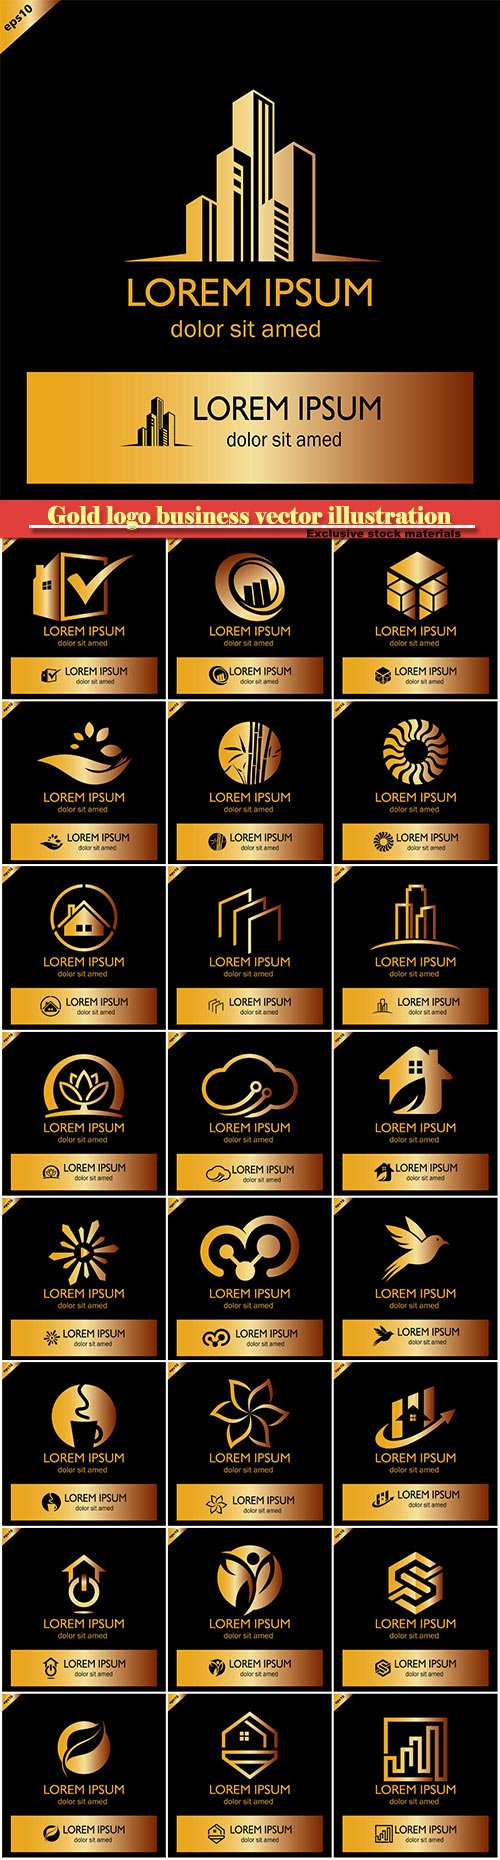 Gold logo business vector illustration #17